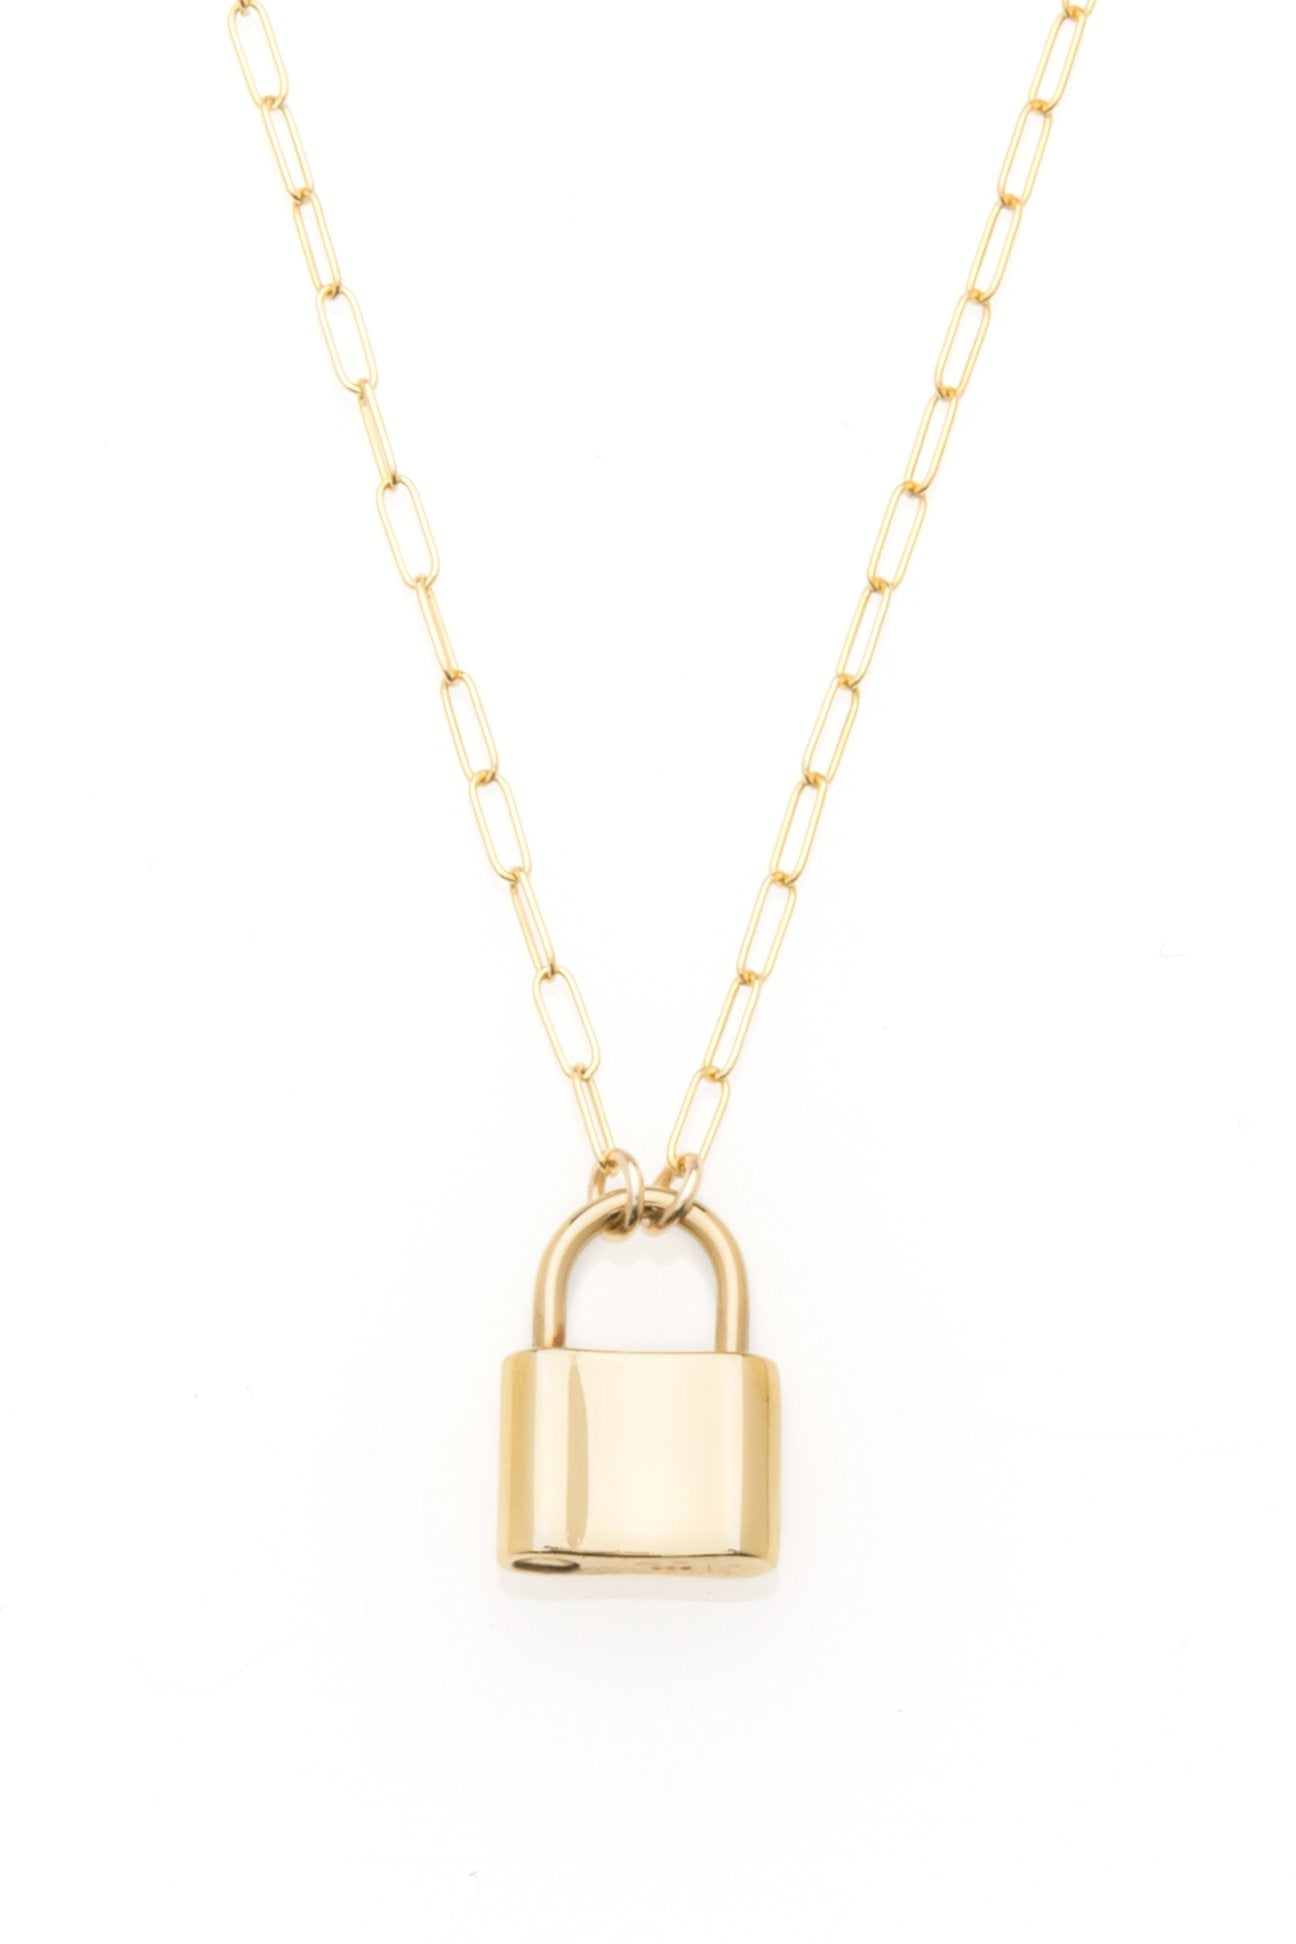 Monaco Lock Necklace - The Canyon